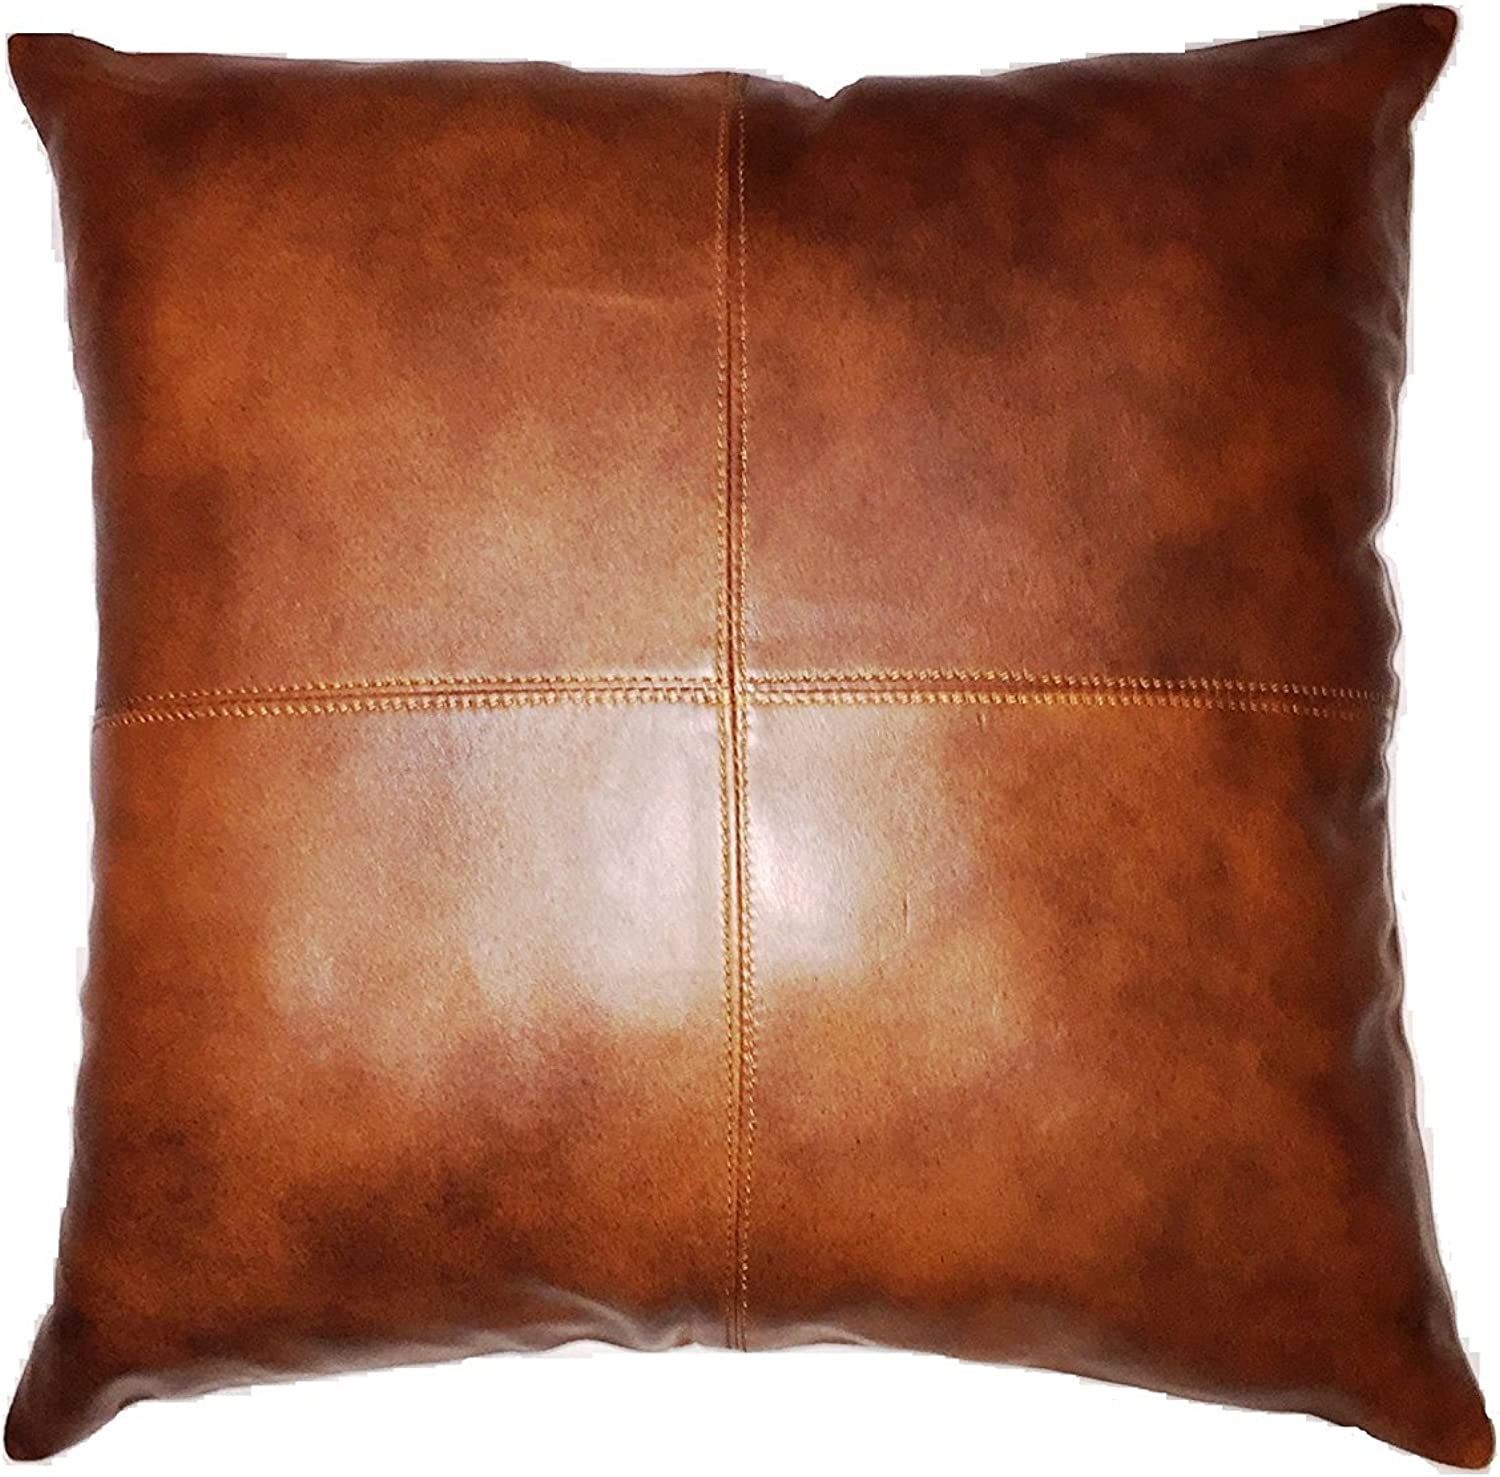 Leather Farm Thick Genuine Leather Pillow Cover TAN Pack of 2 (20''x20'' (2))